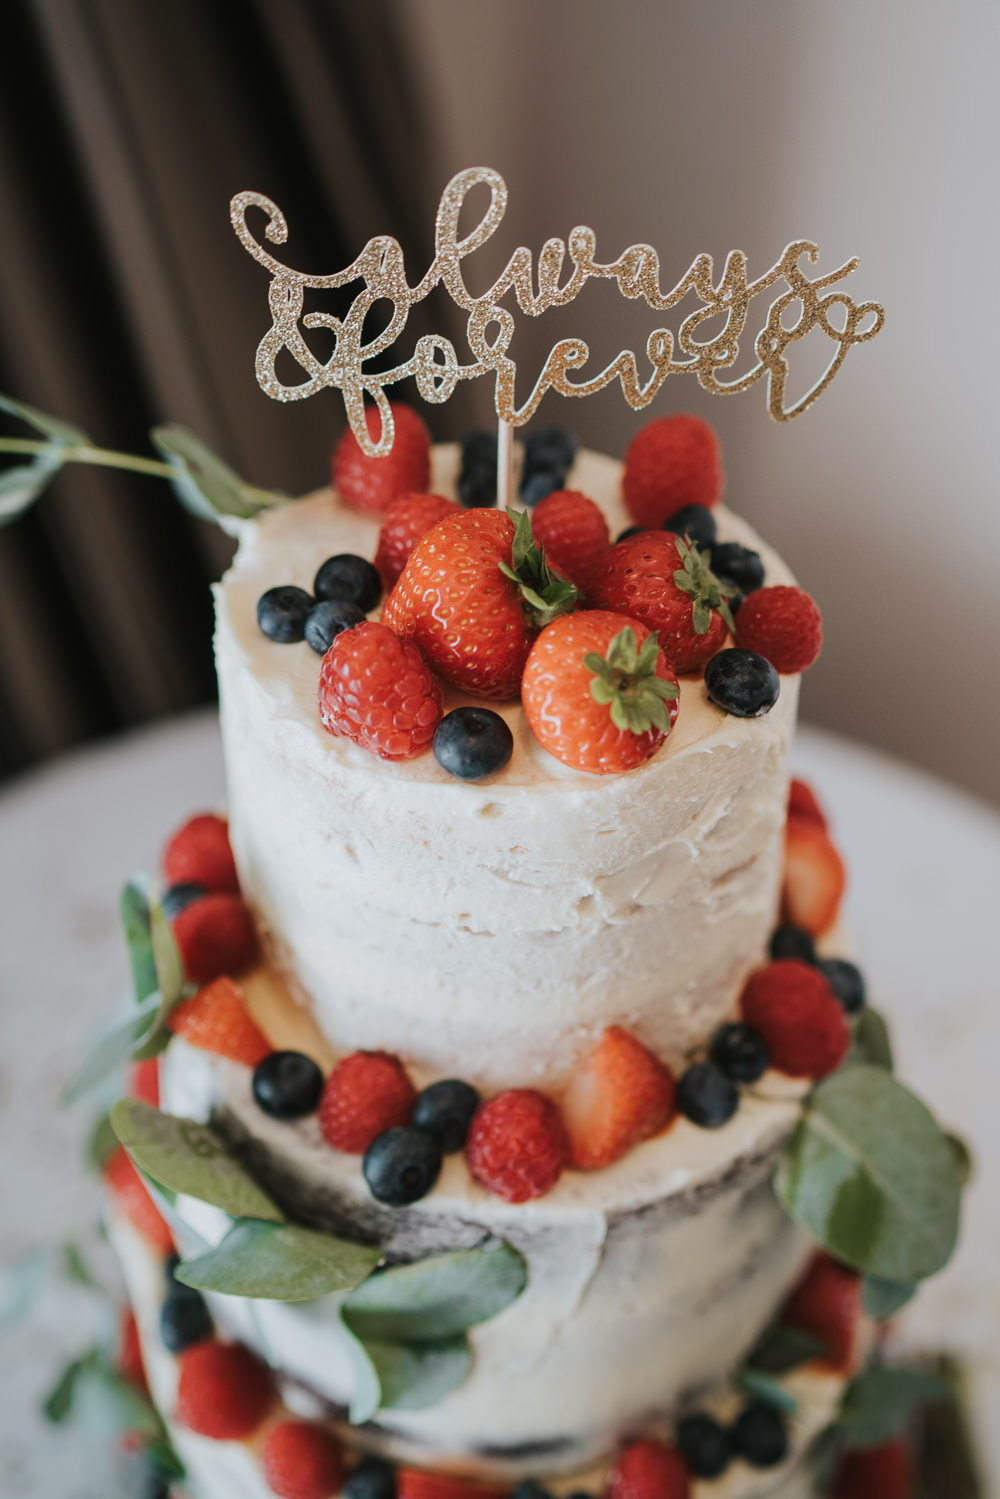 Intimate Outdoor Natural Relaxed Laid Back Summer Reception Seminaked Fruit Strawberries Cake Topper | Prested Hall Wedding Grace Elizabeth Photography